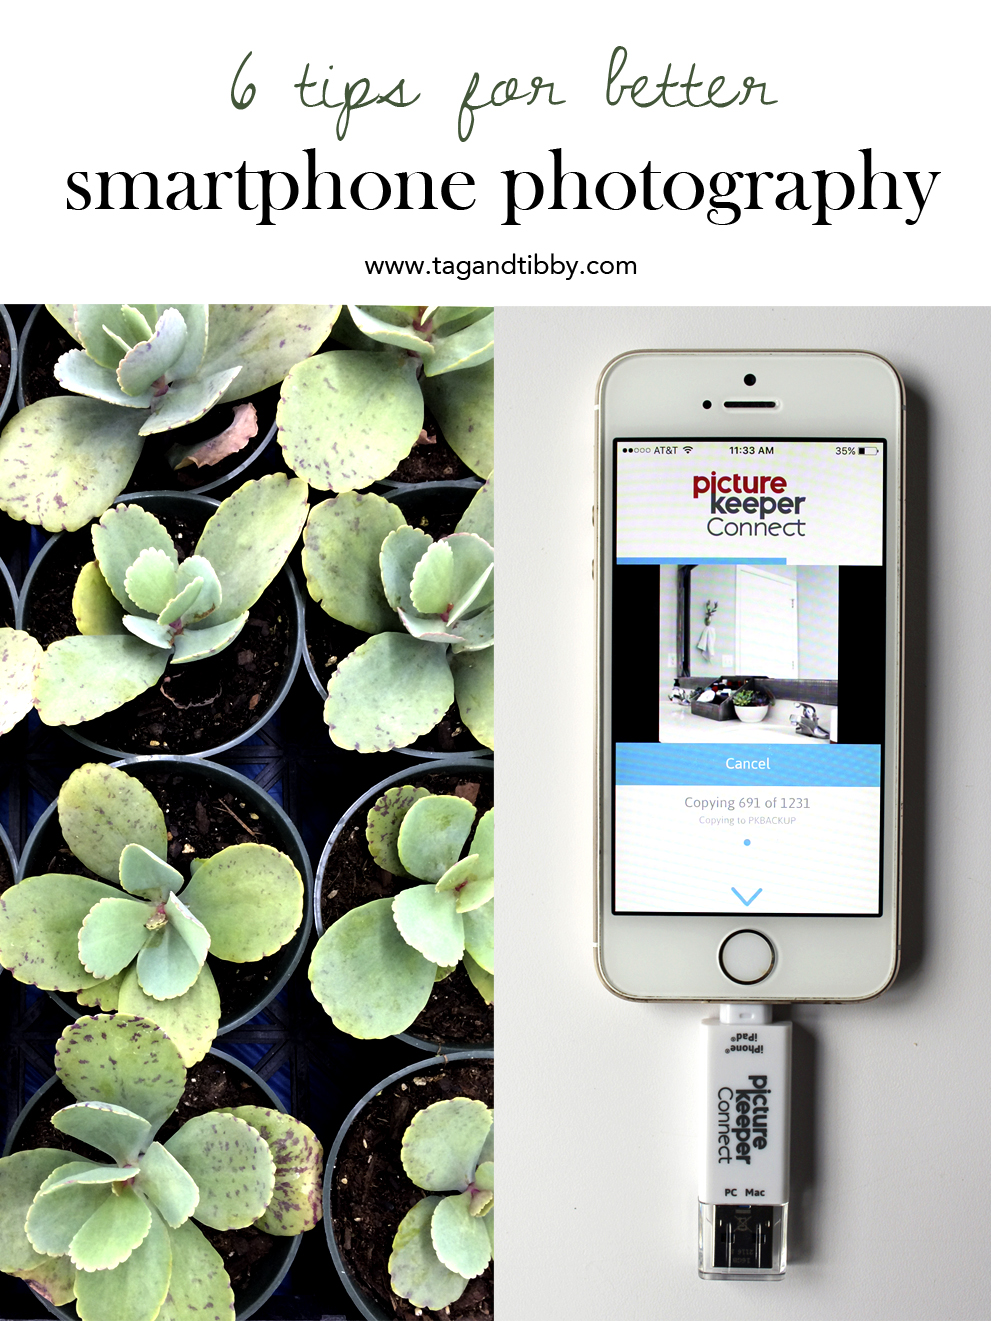 Tips for Better Smart Phone Photography